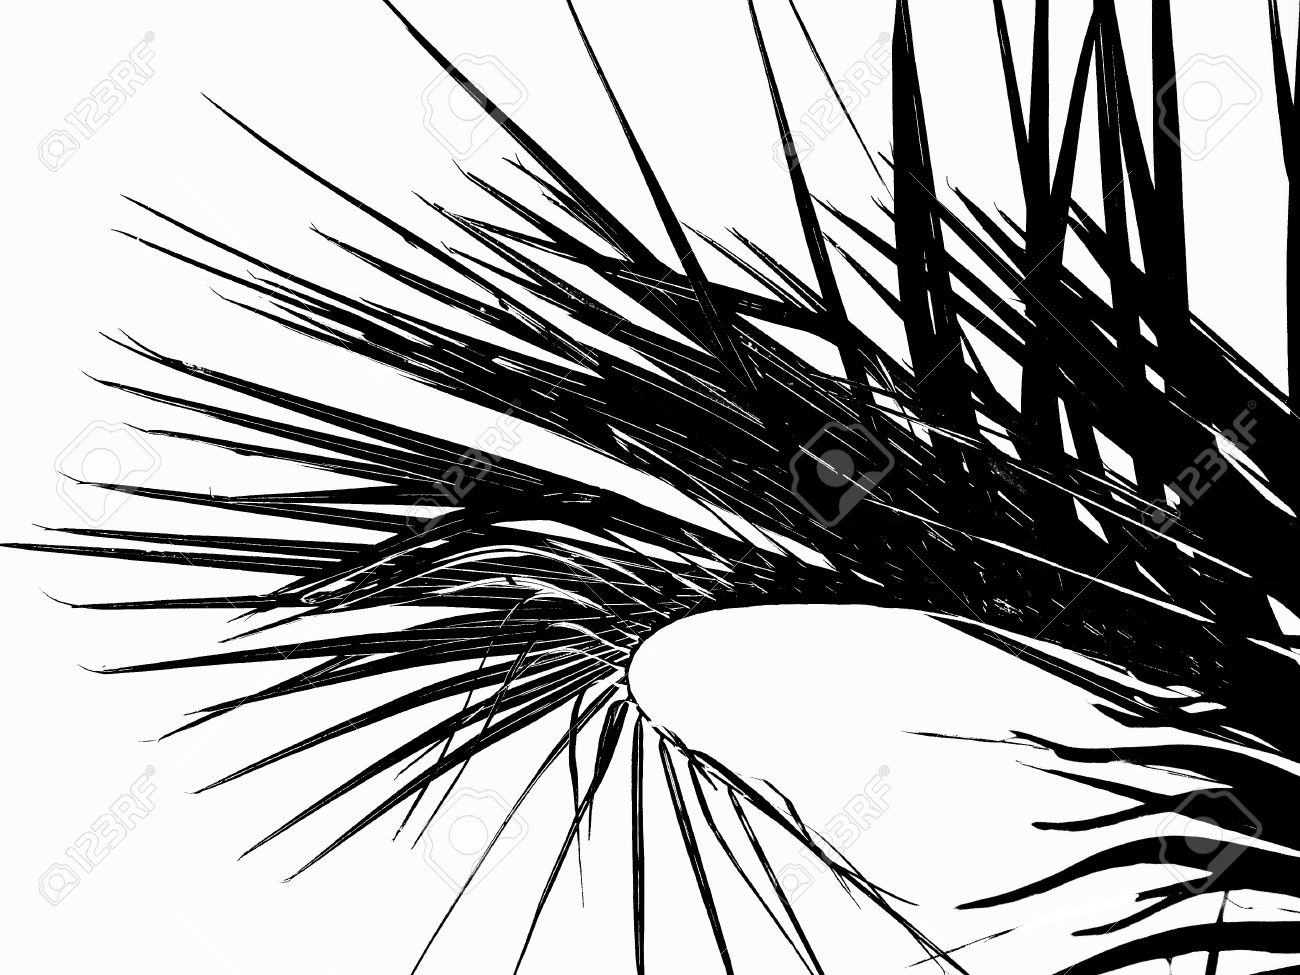 Illustration palm leaves silhouette illustration in black isolated on white